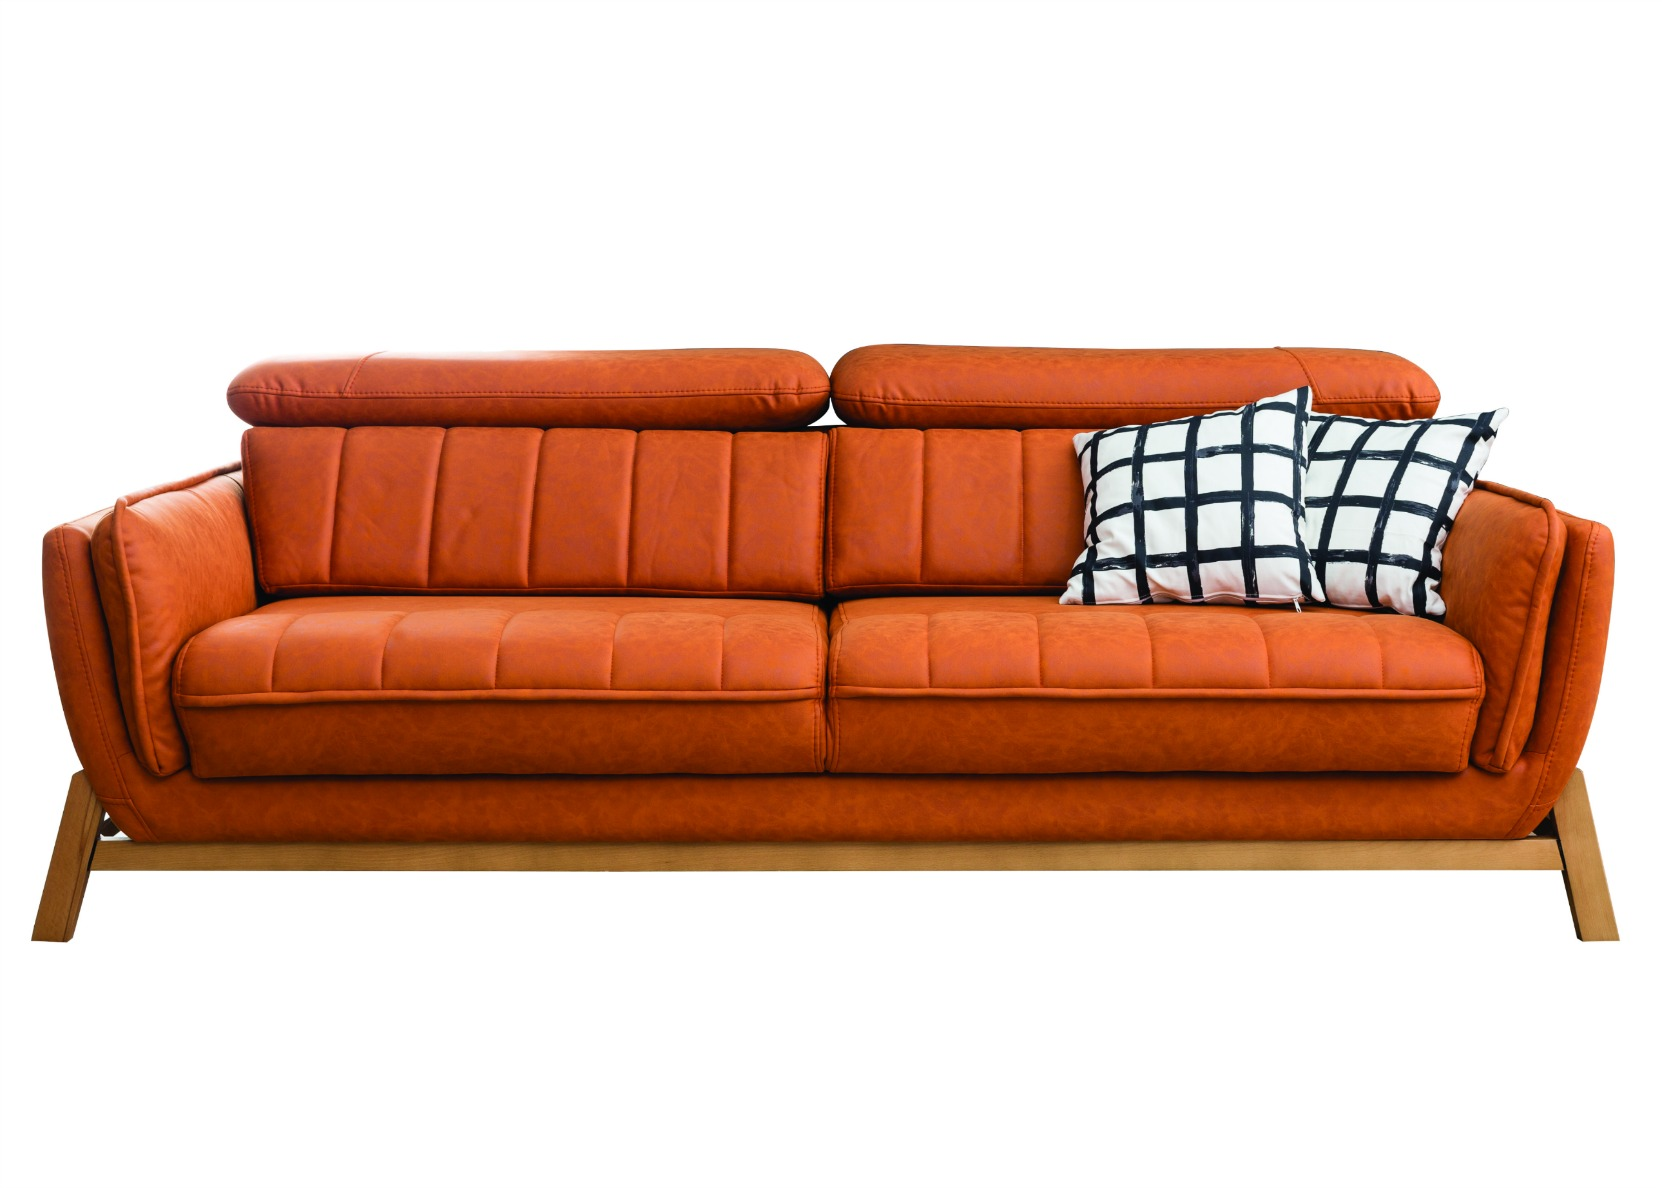 Relax Sofa Relax Sofa With Motorized Sliding Seat Not Just Brown